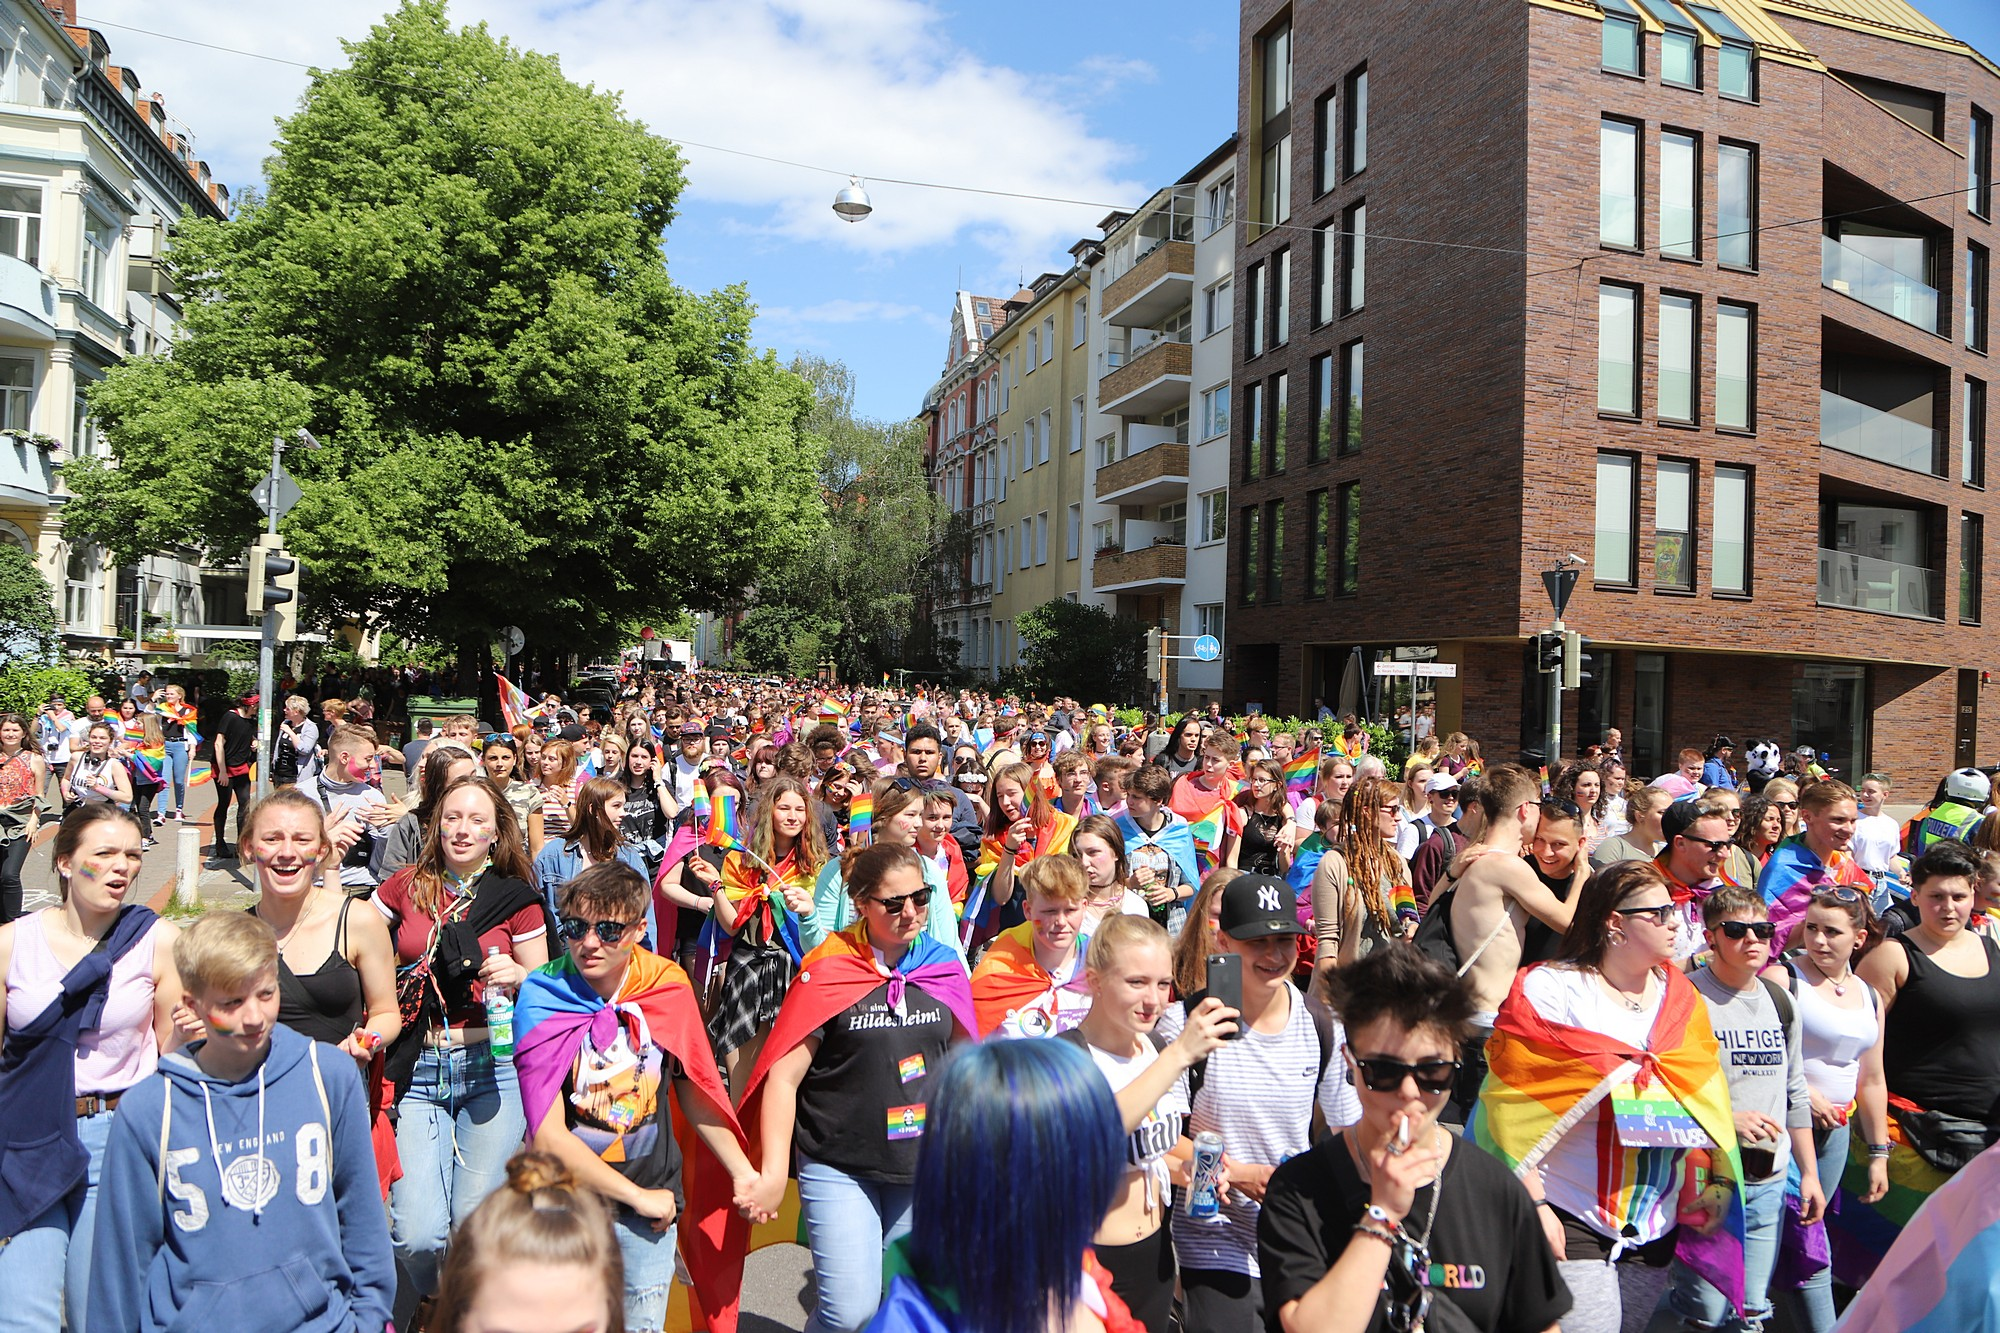 CSD Hannover - Demonstration & Strassenfest / 537x betrachtet